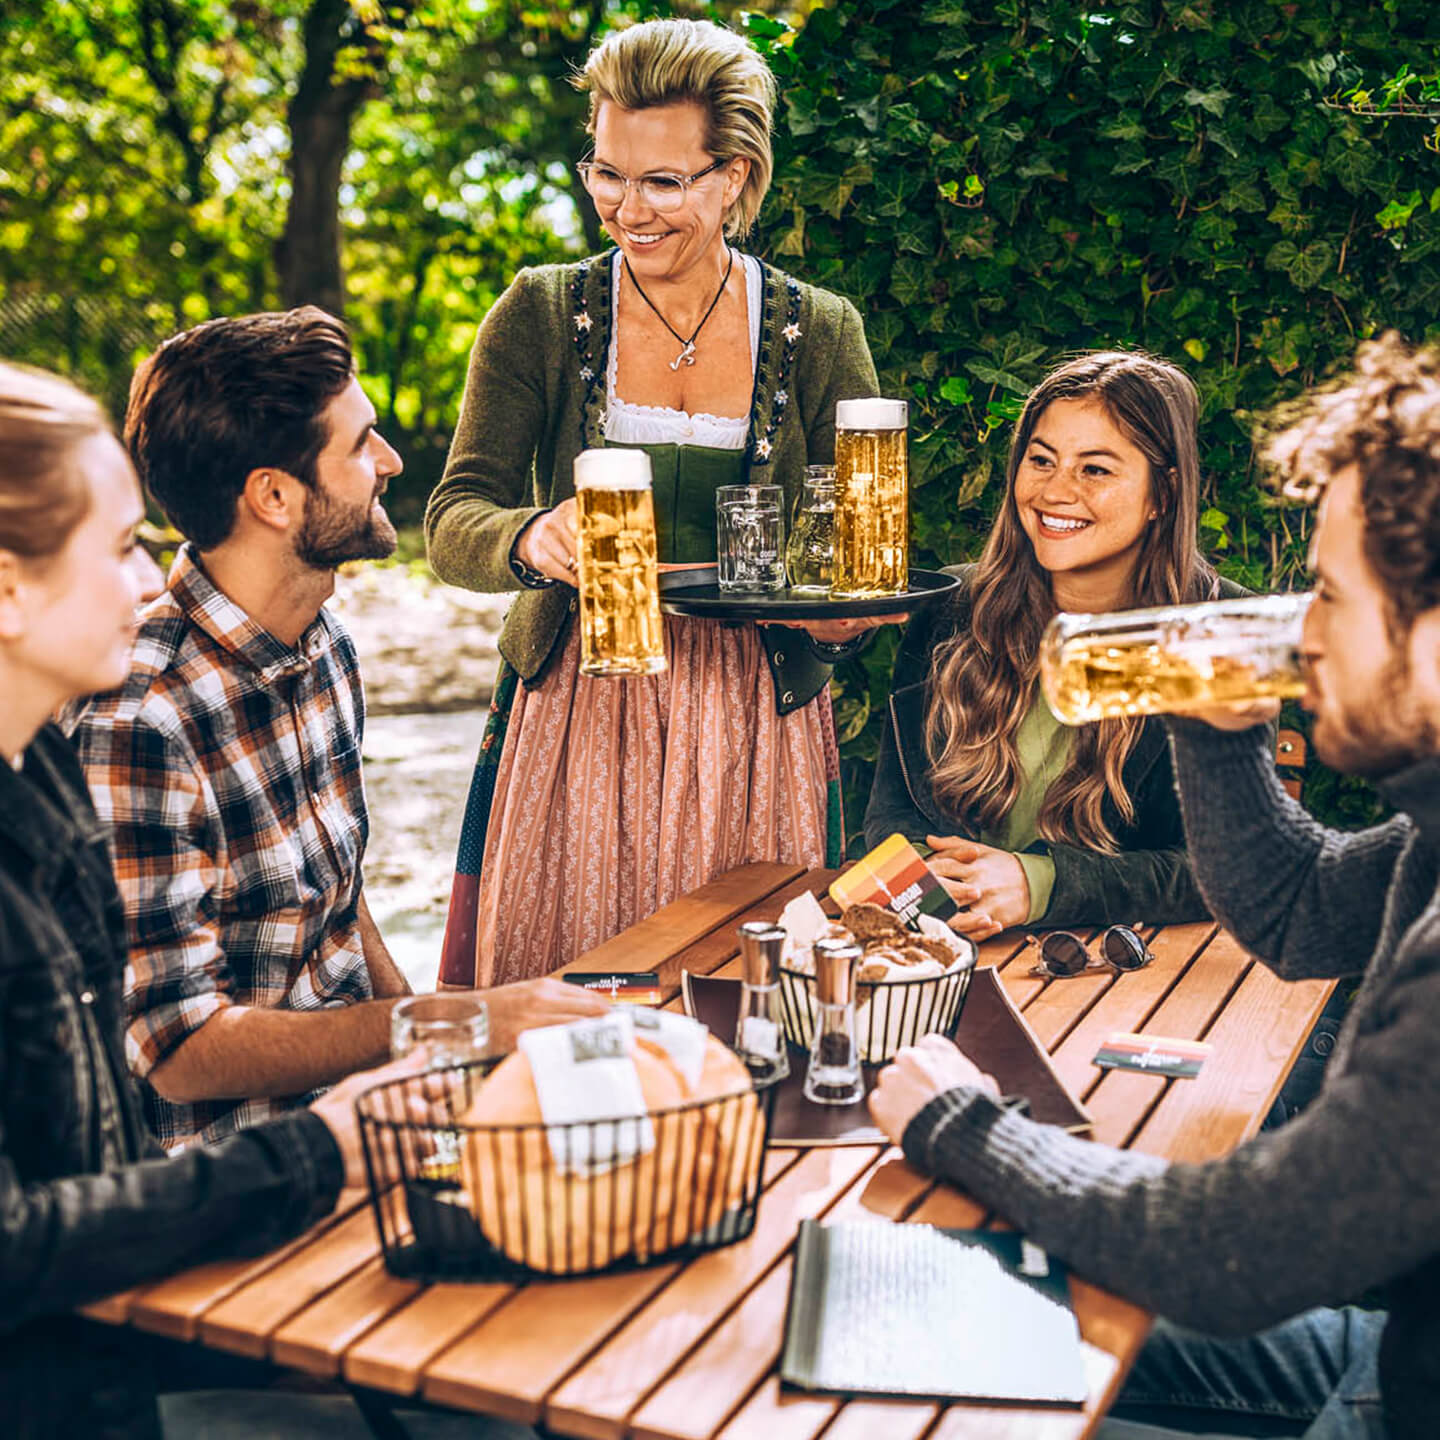 Groups drinking in the beer garden in a relaxed atmosphere